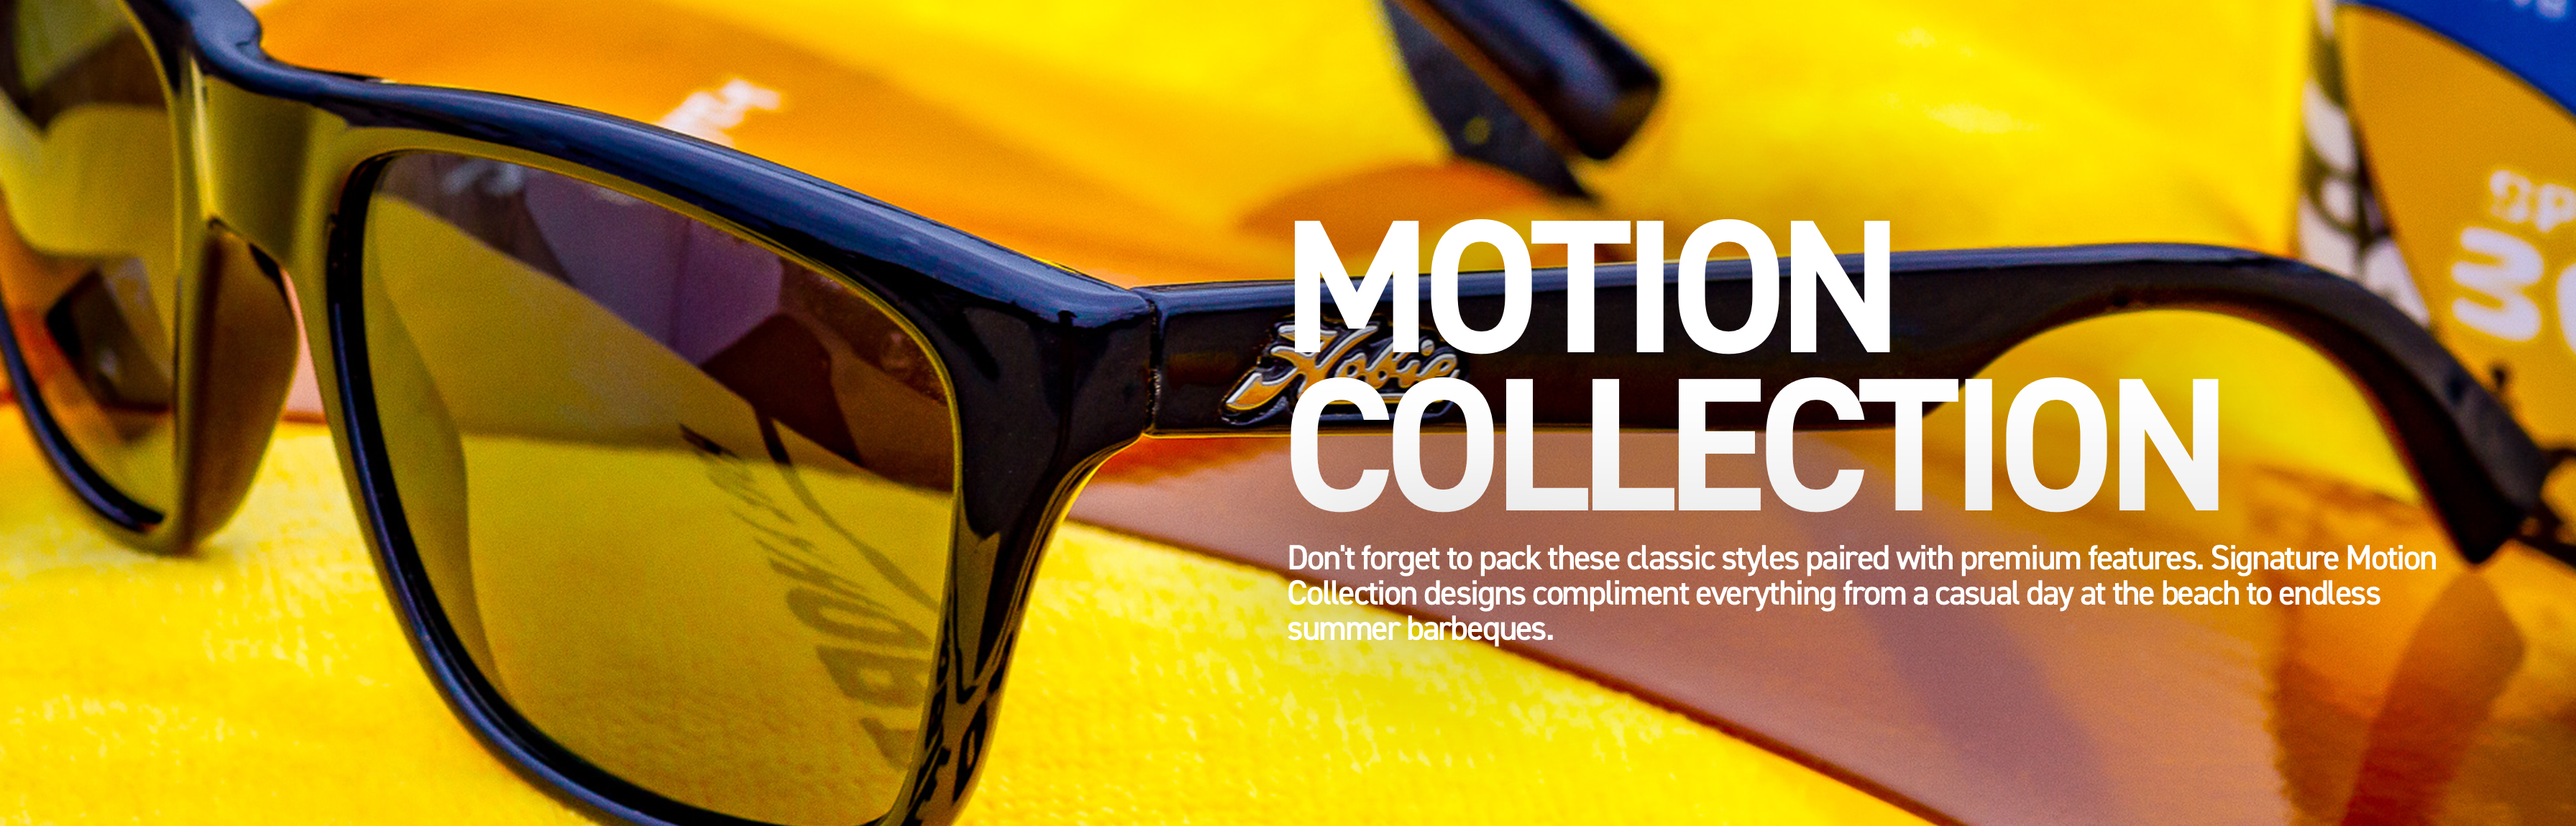 Motion Collection